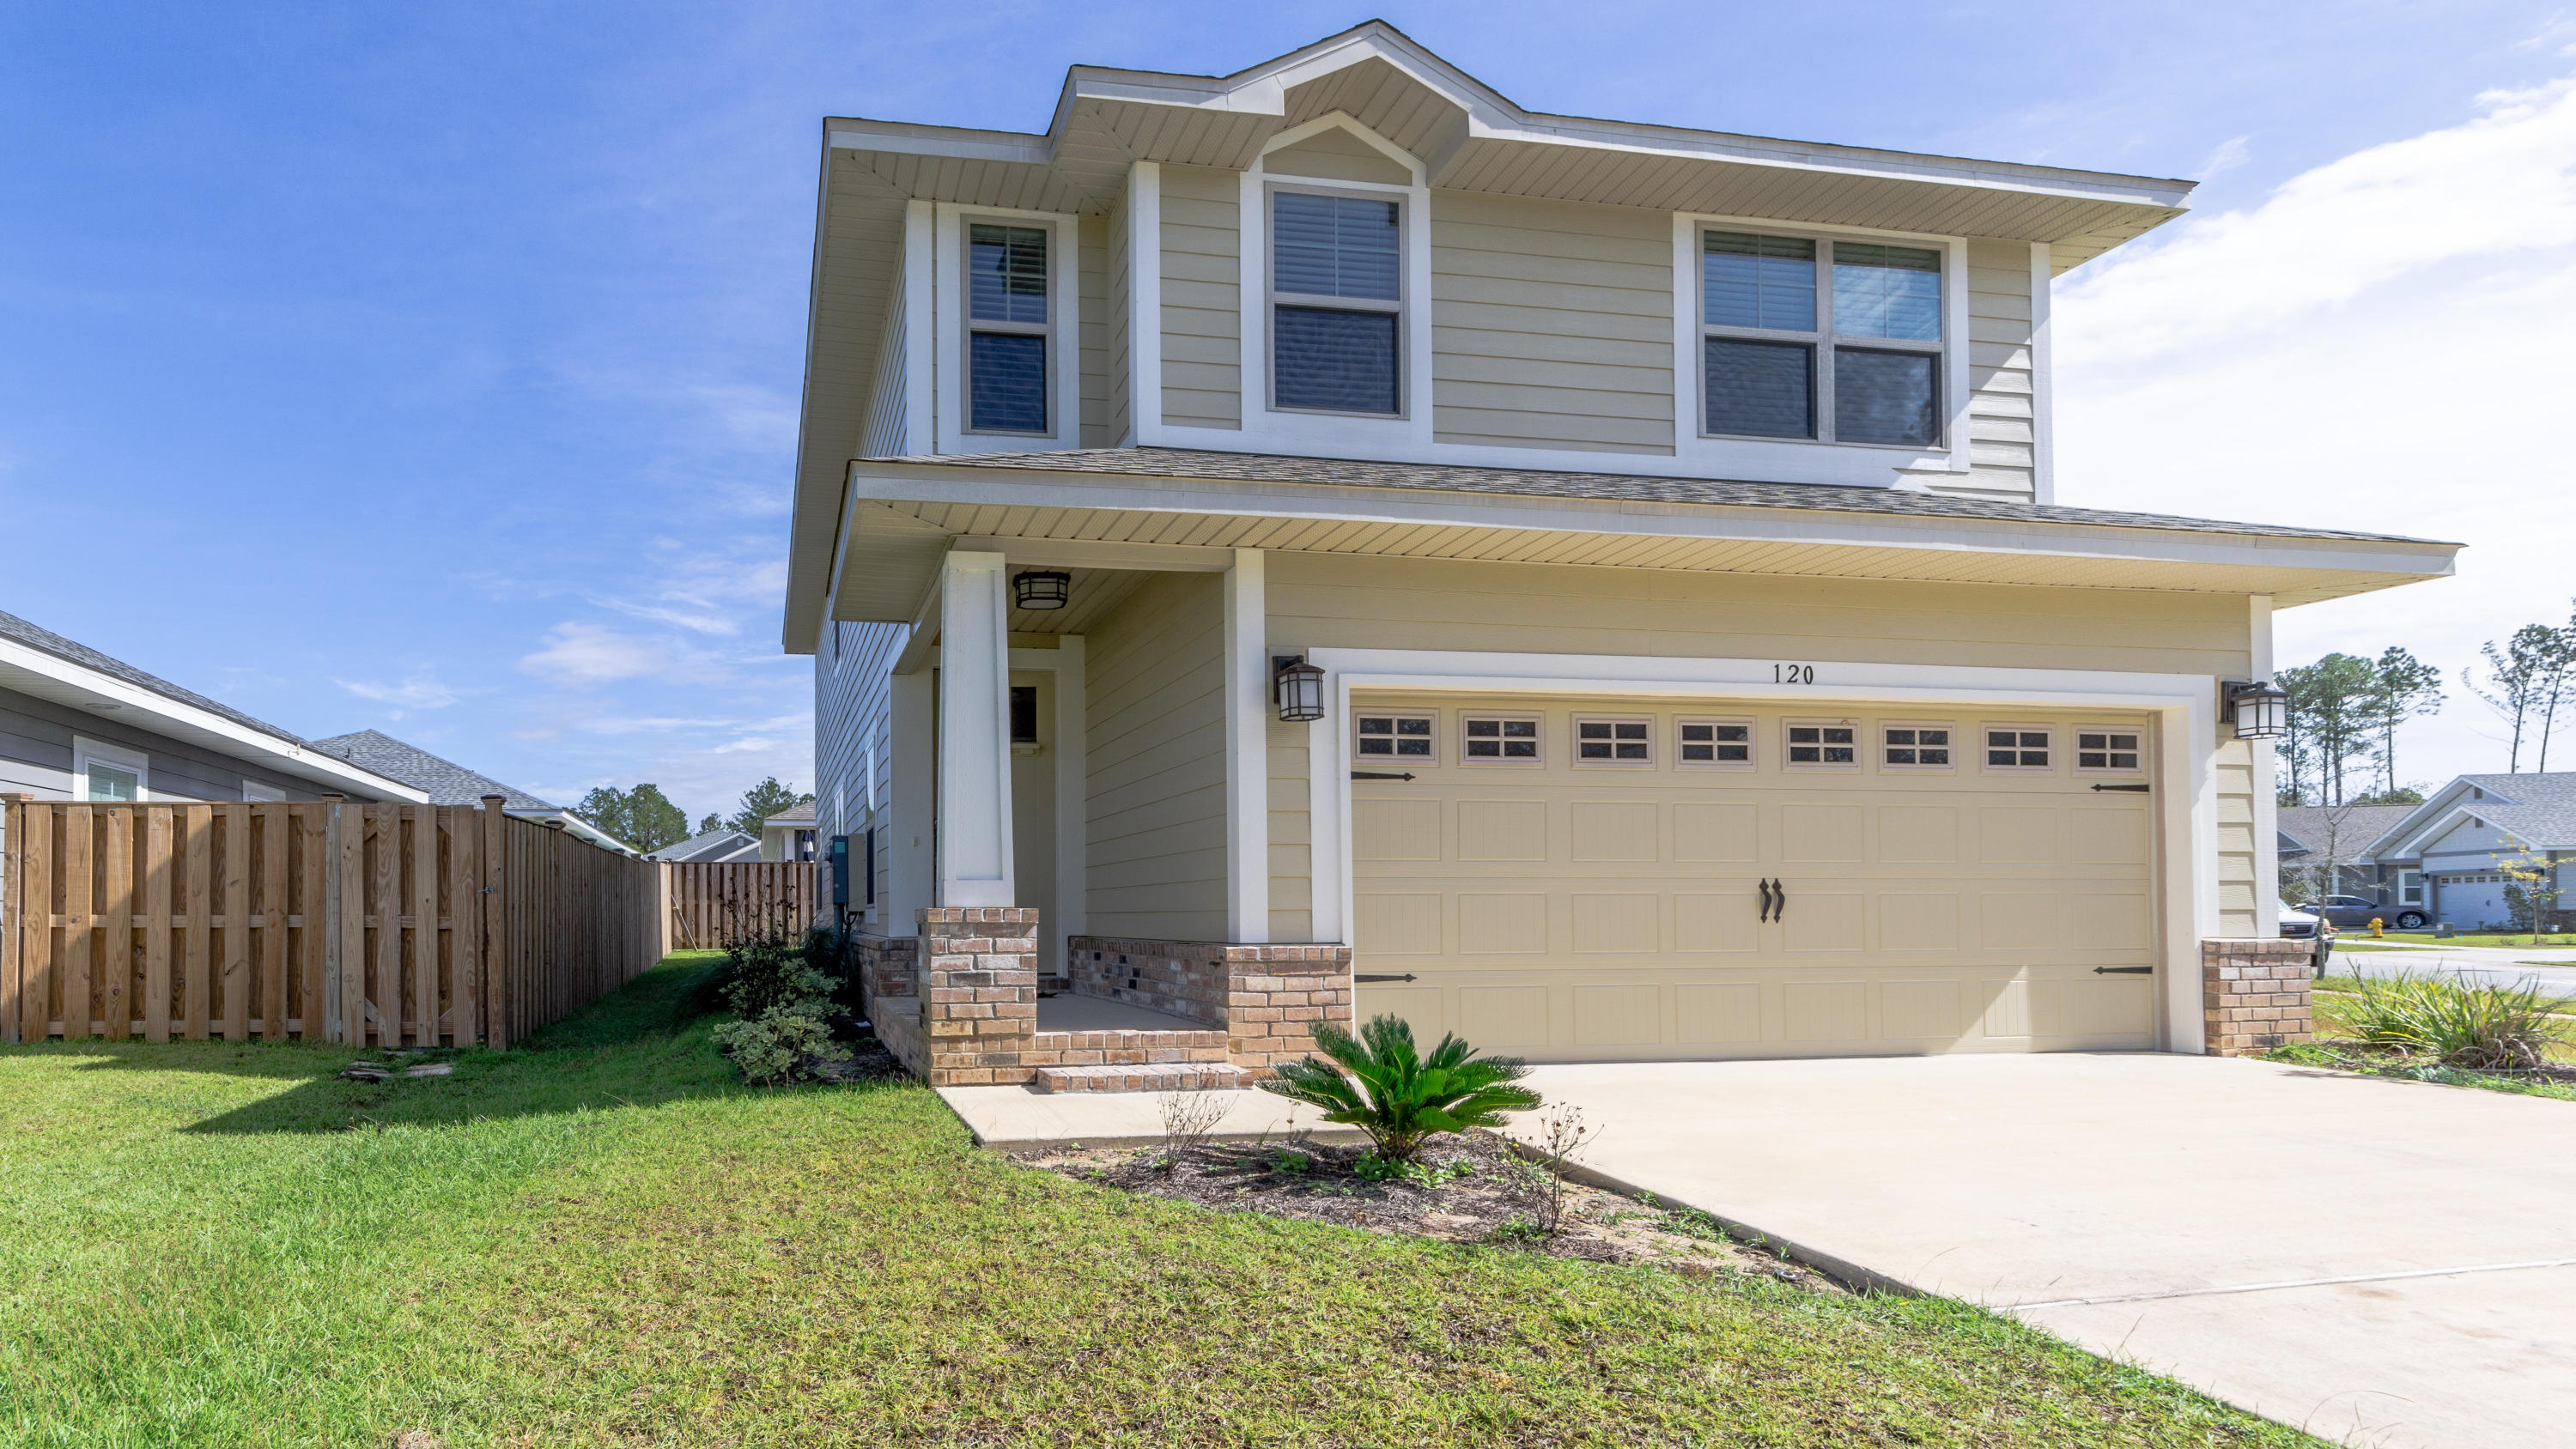 Photo of home for sale at 120 Brandywine, Freeport FL